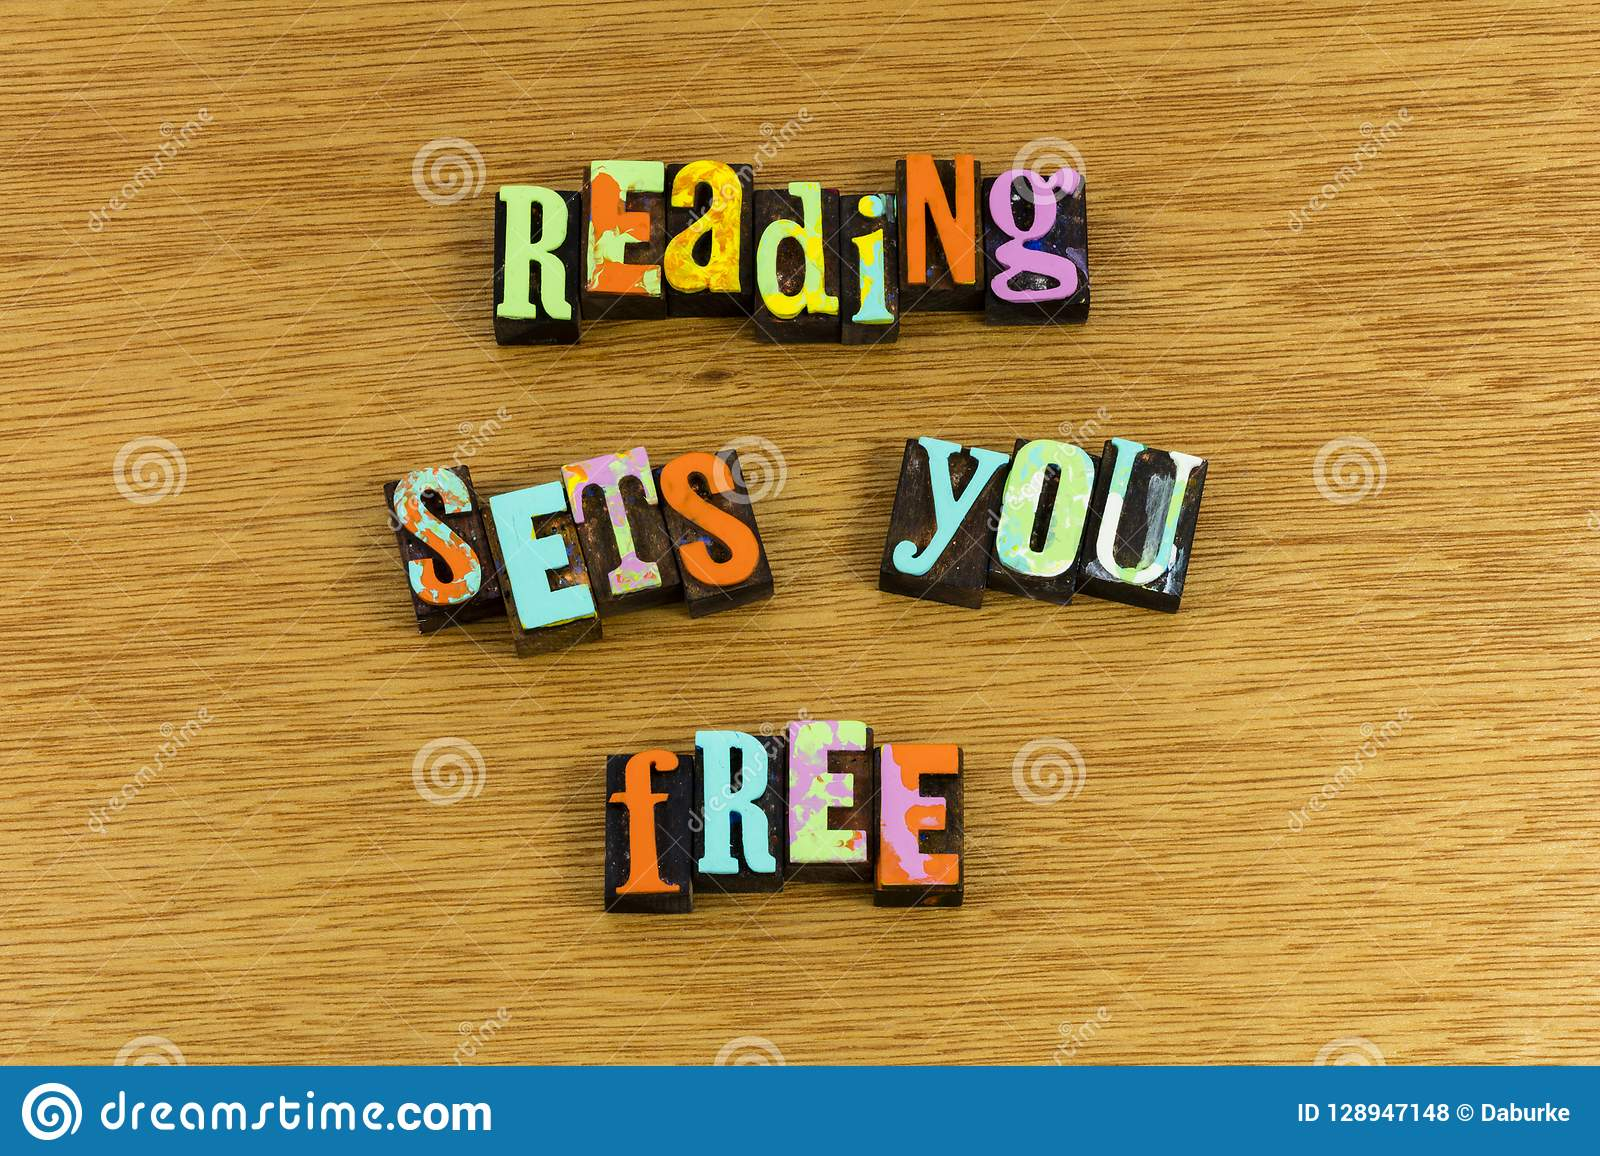 Reading books sets you free